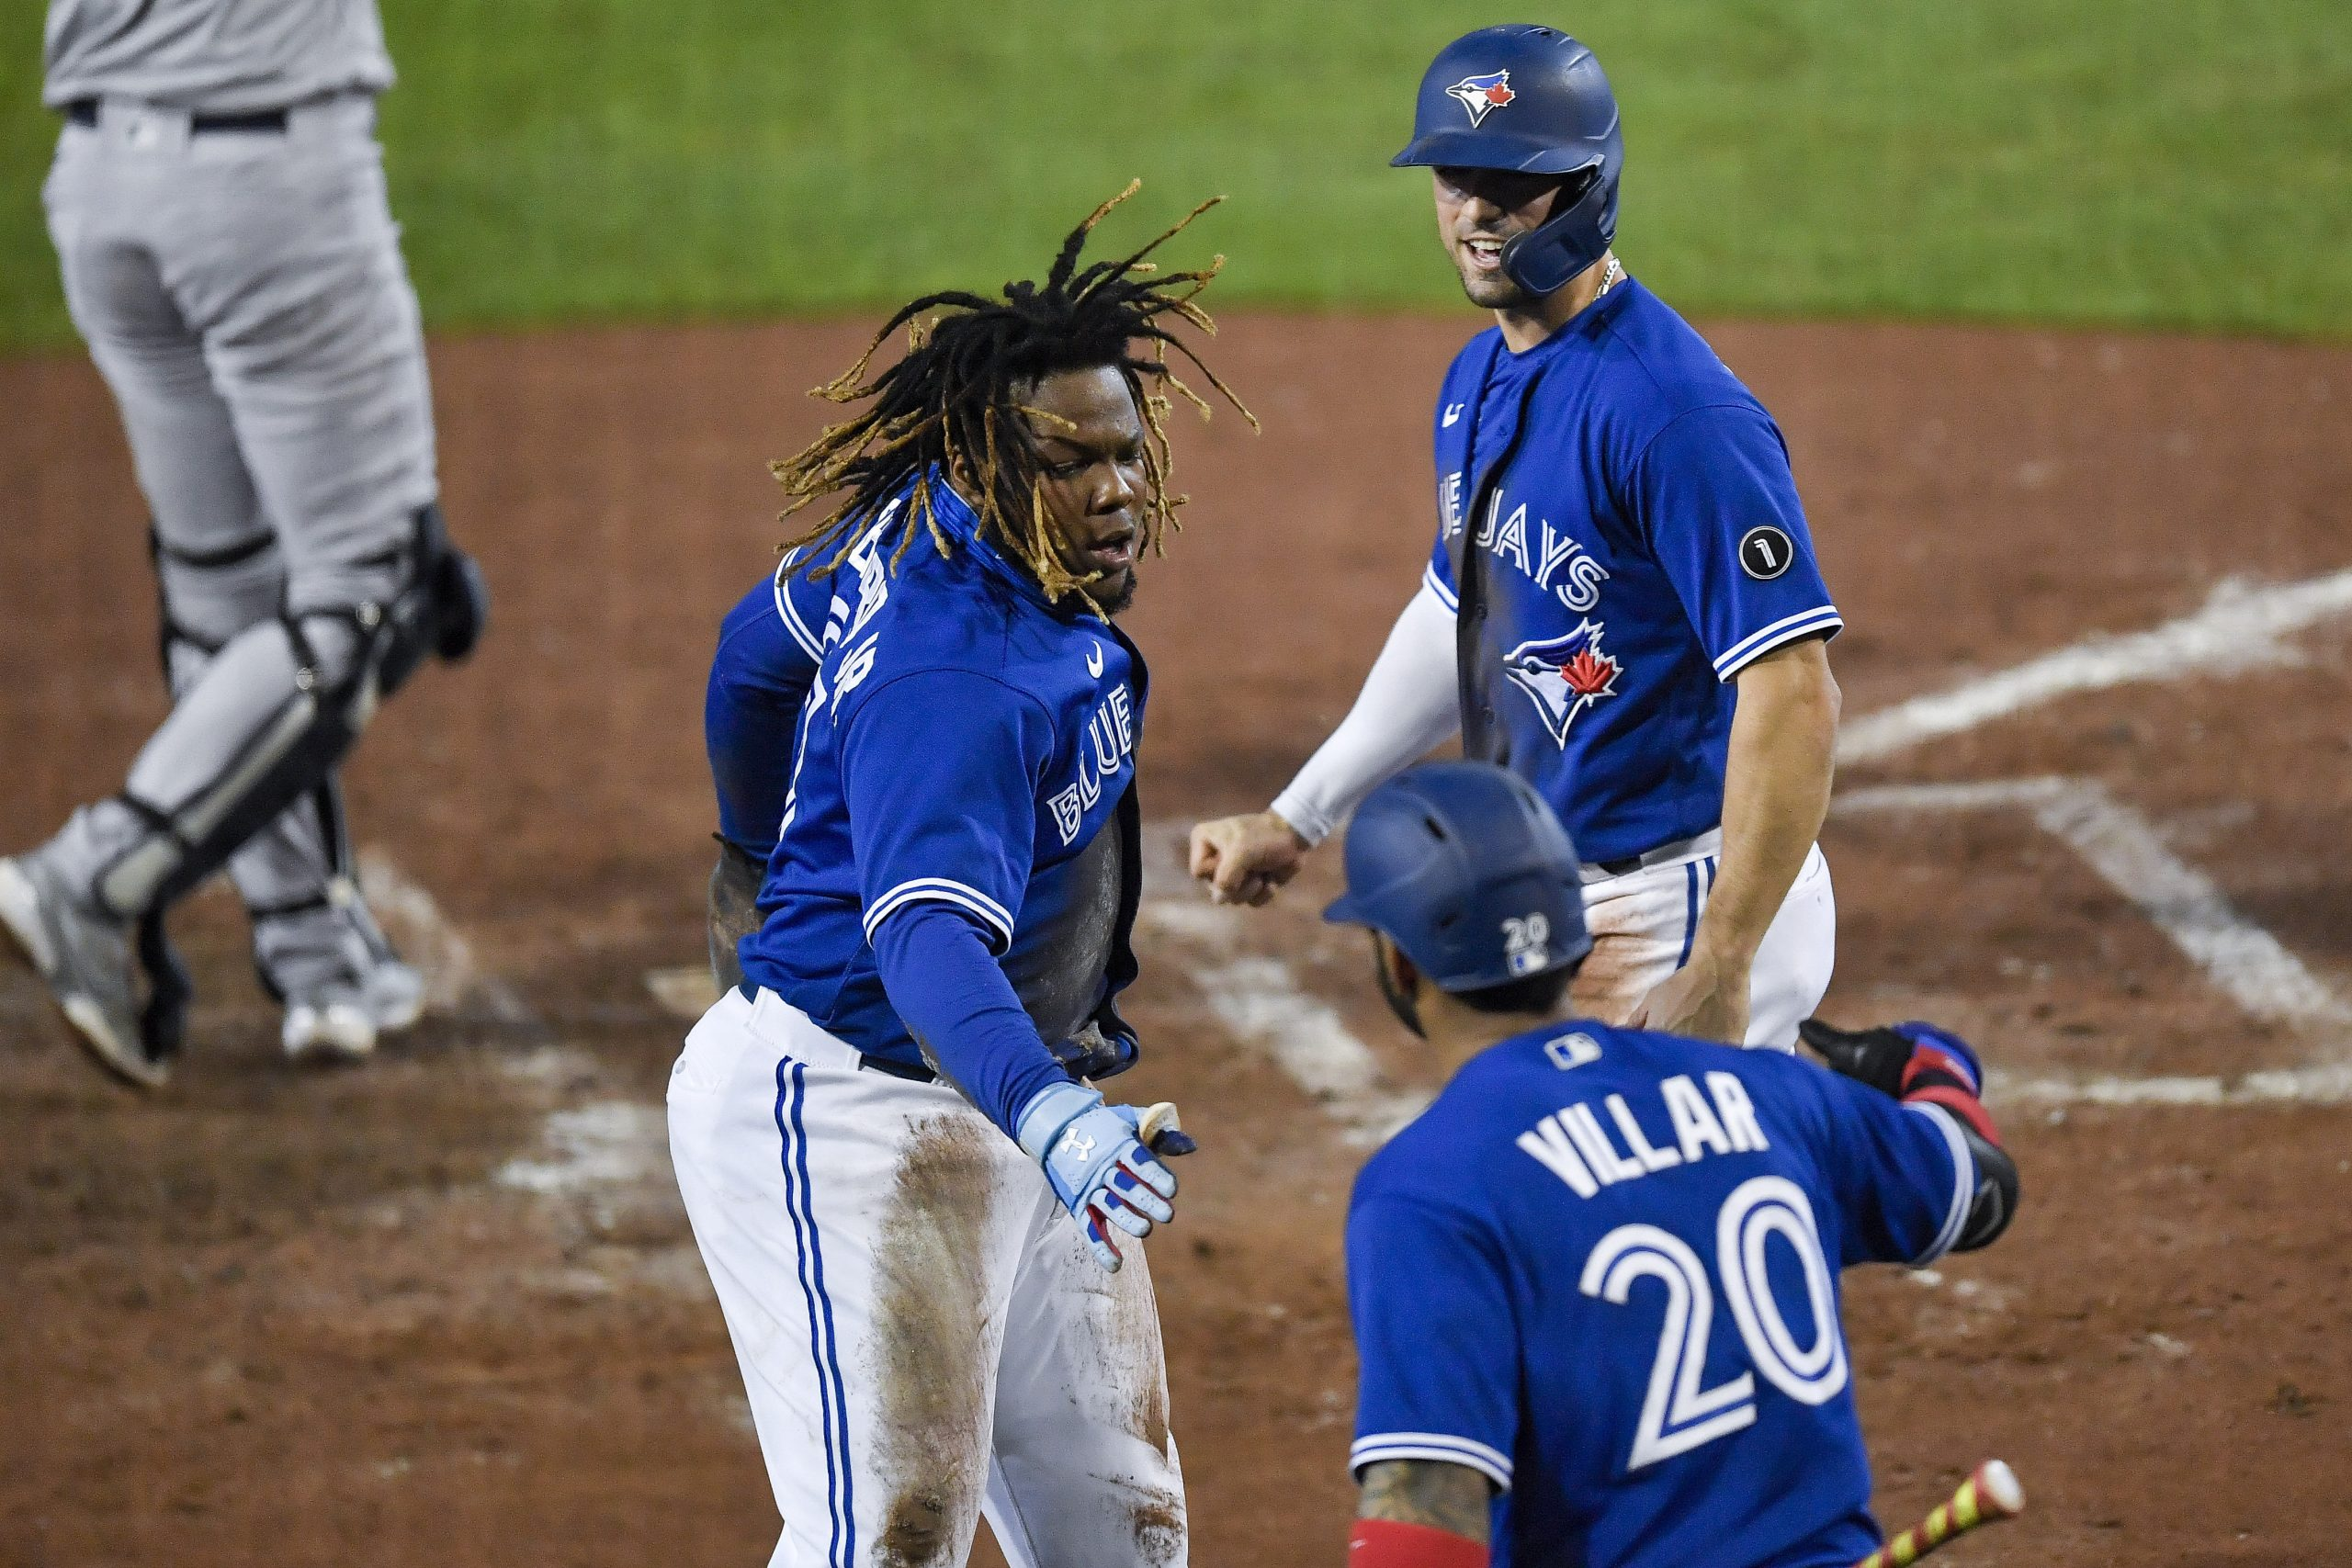 Playoff berth assured, Jays looking for more vs. Orioles